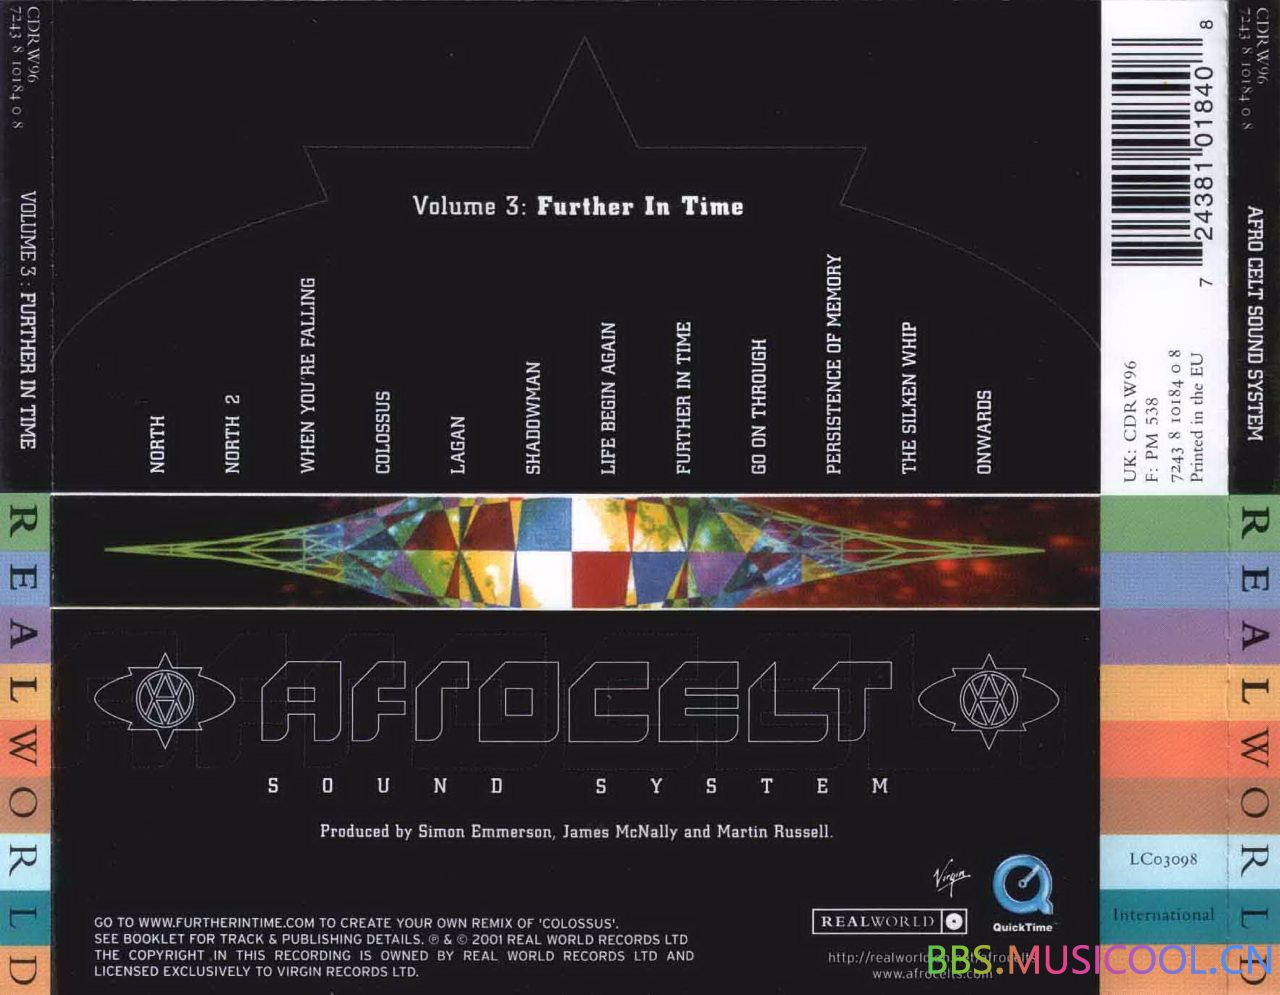 Afro Celt Sound System - Volume 3 Further In Time - Trasera.jpg